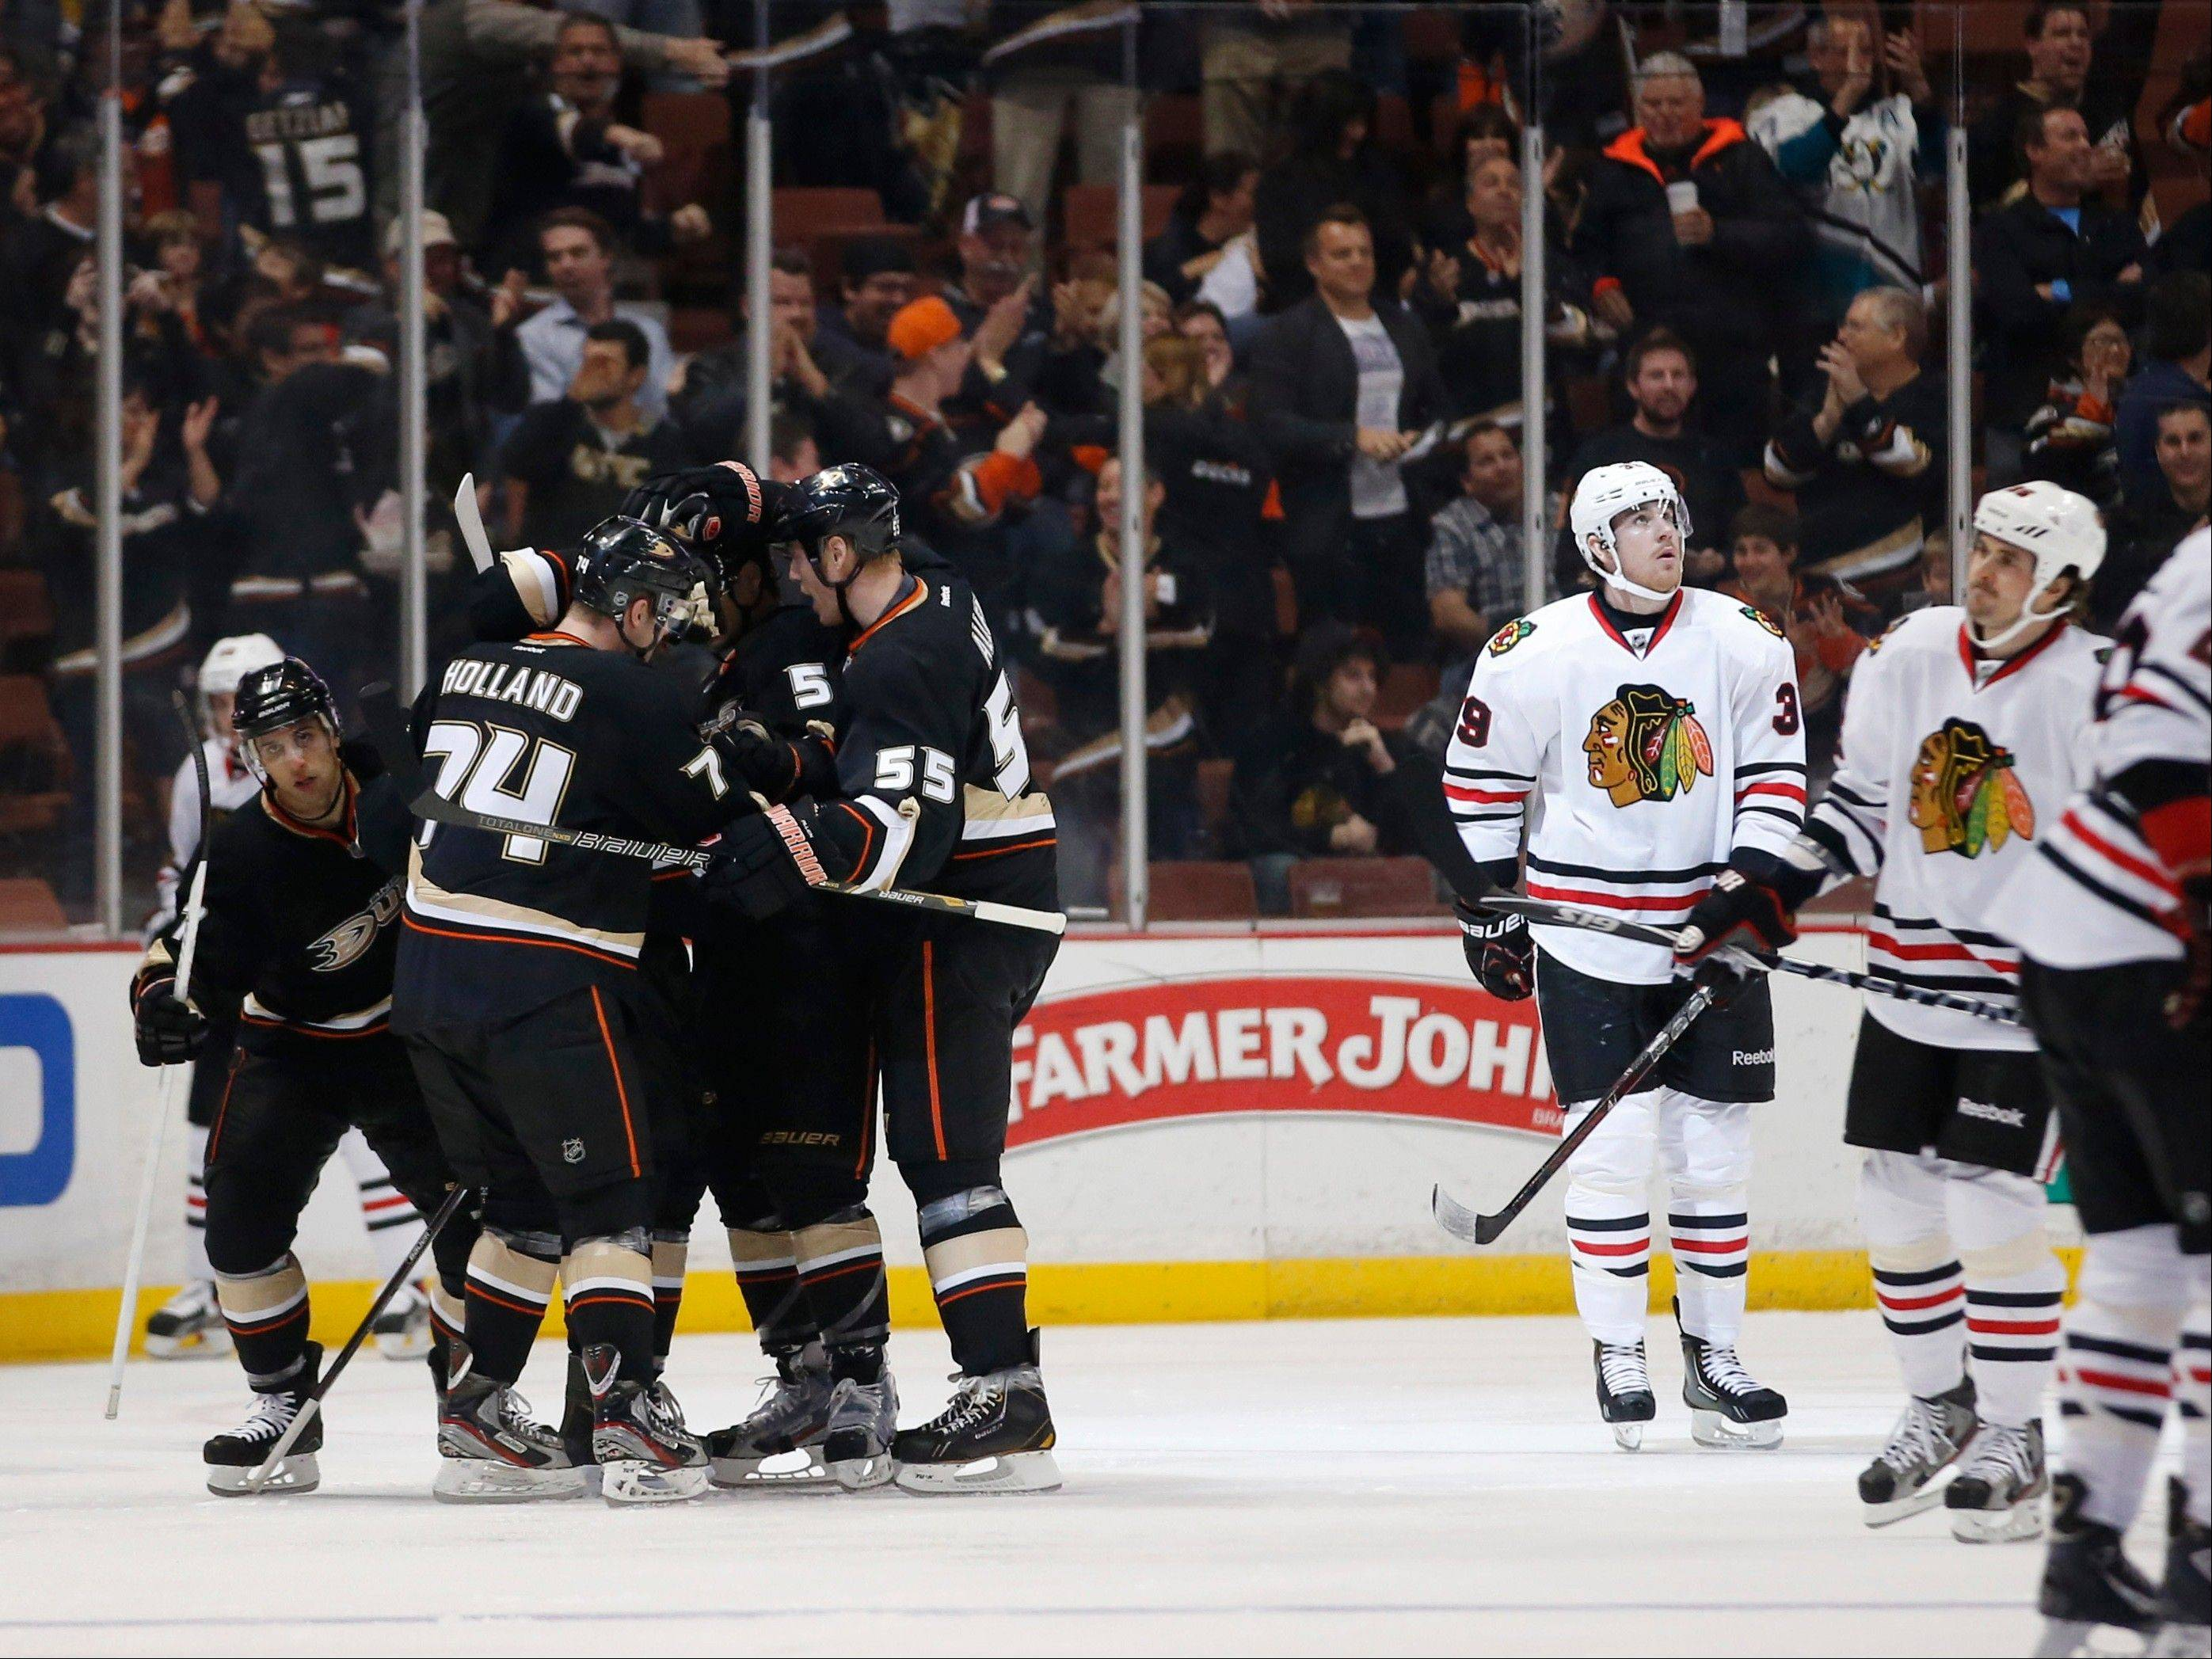 Anaheim Ducks' Peter Holland (74) is congratulated by Bryan Allen (55) and Luca Sbisa (5) after scoring a goal against the Chicago Blackhawks during the first period.